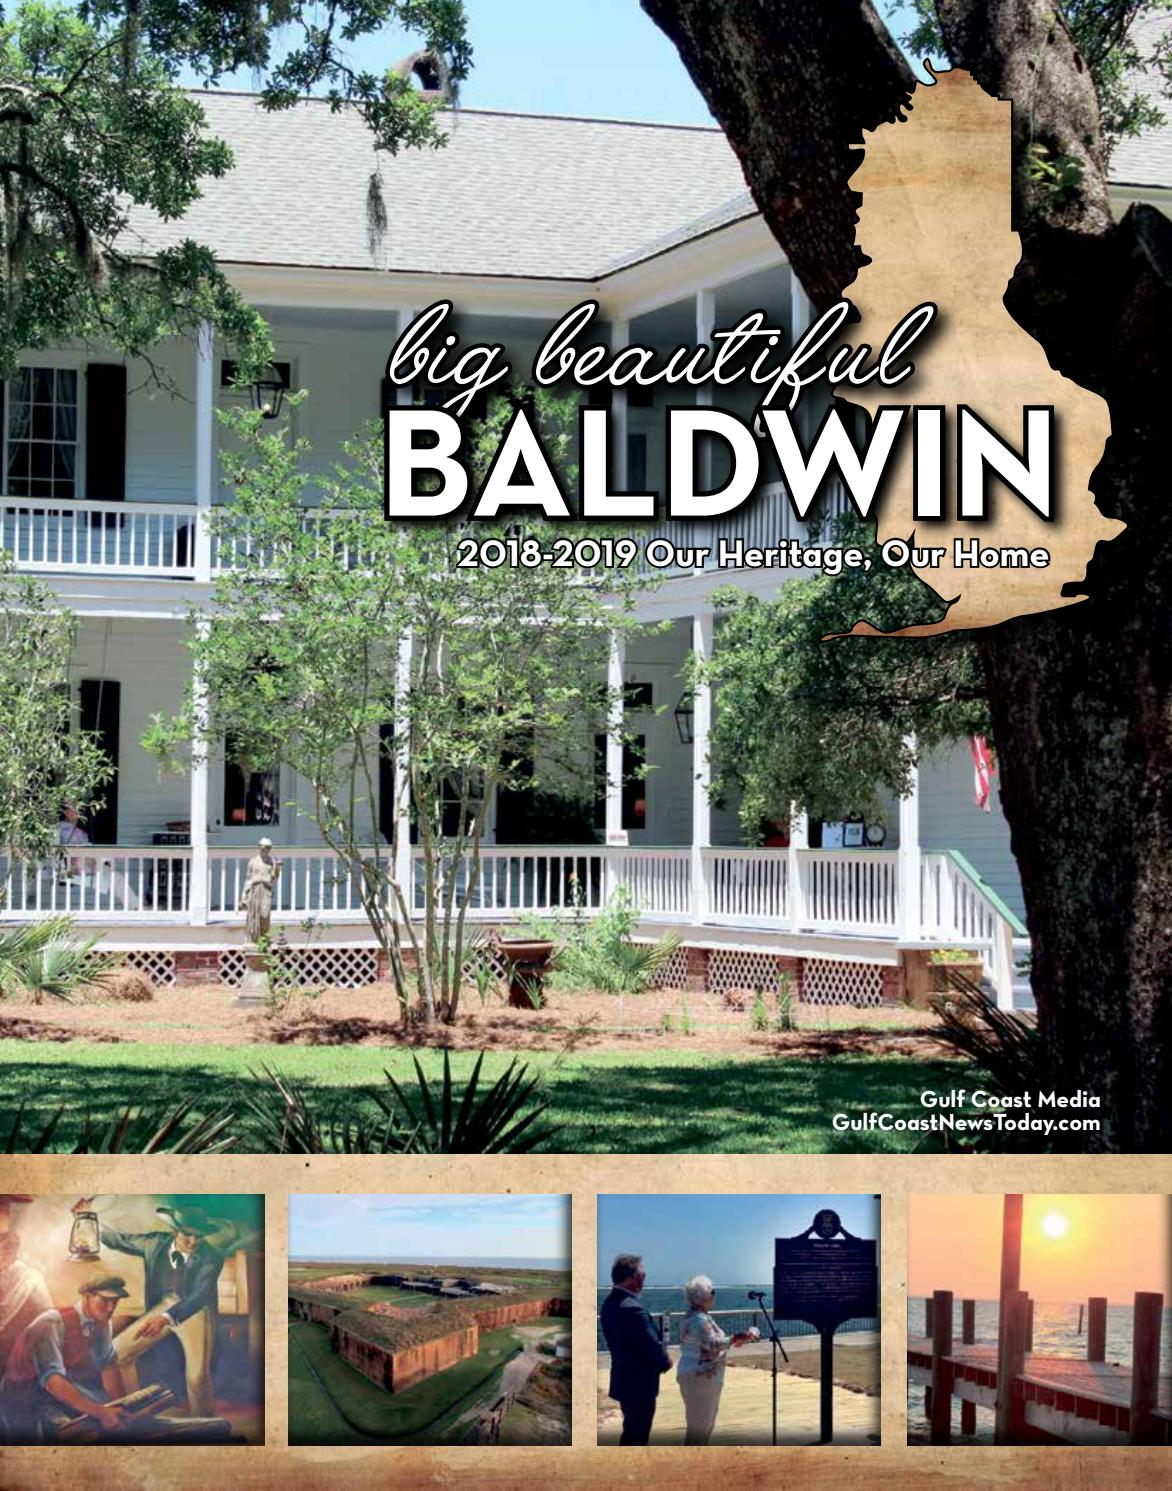 Big Beautiful Baldwin 2018 2019 By Gulf Coast Media Issuu Dr Kevin Women Casual Shoes 43240 Navy Yellow 41